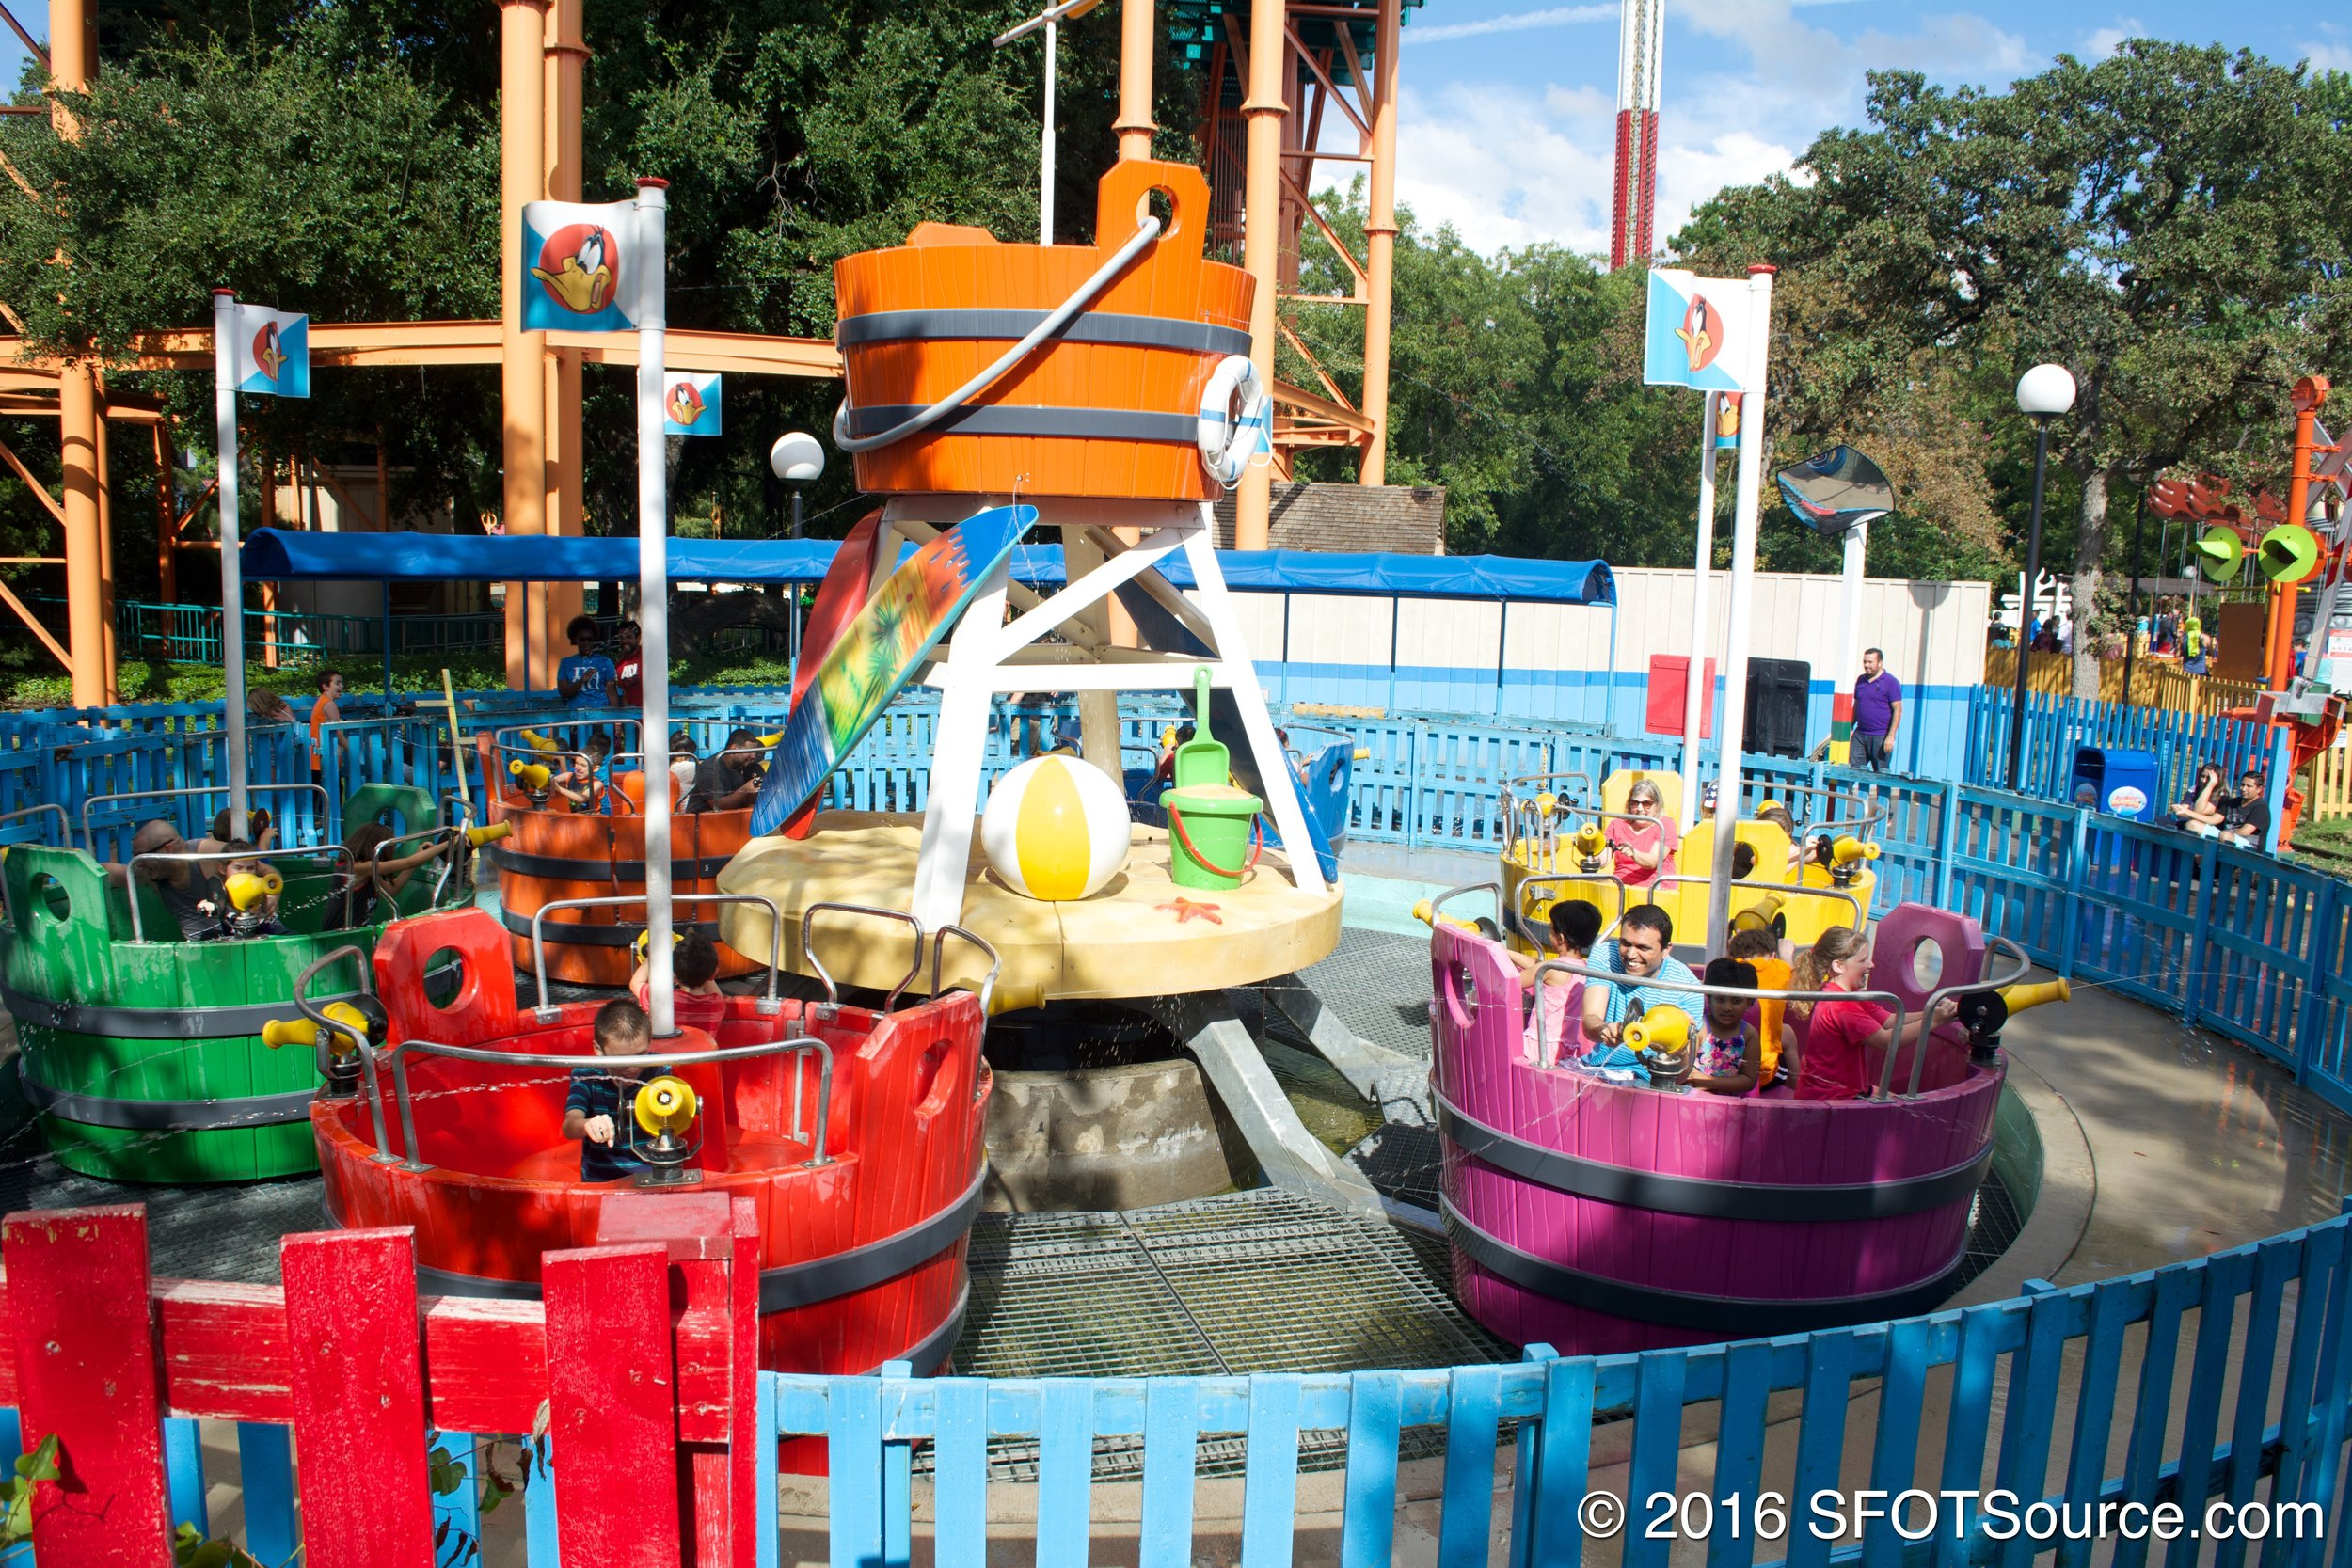 Guests use water blasters to spray each other.